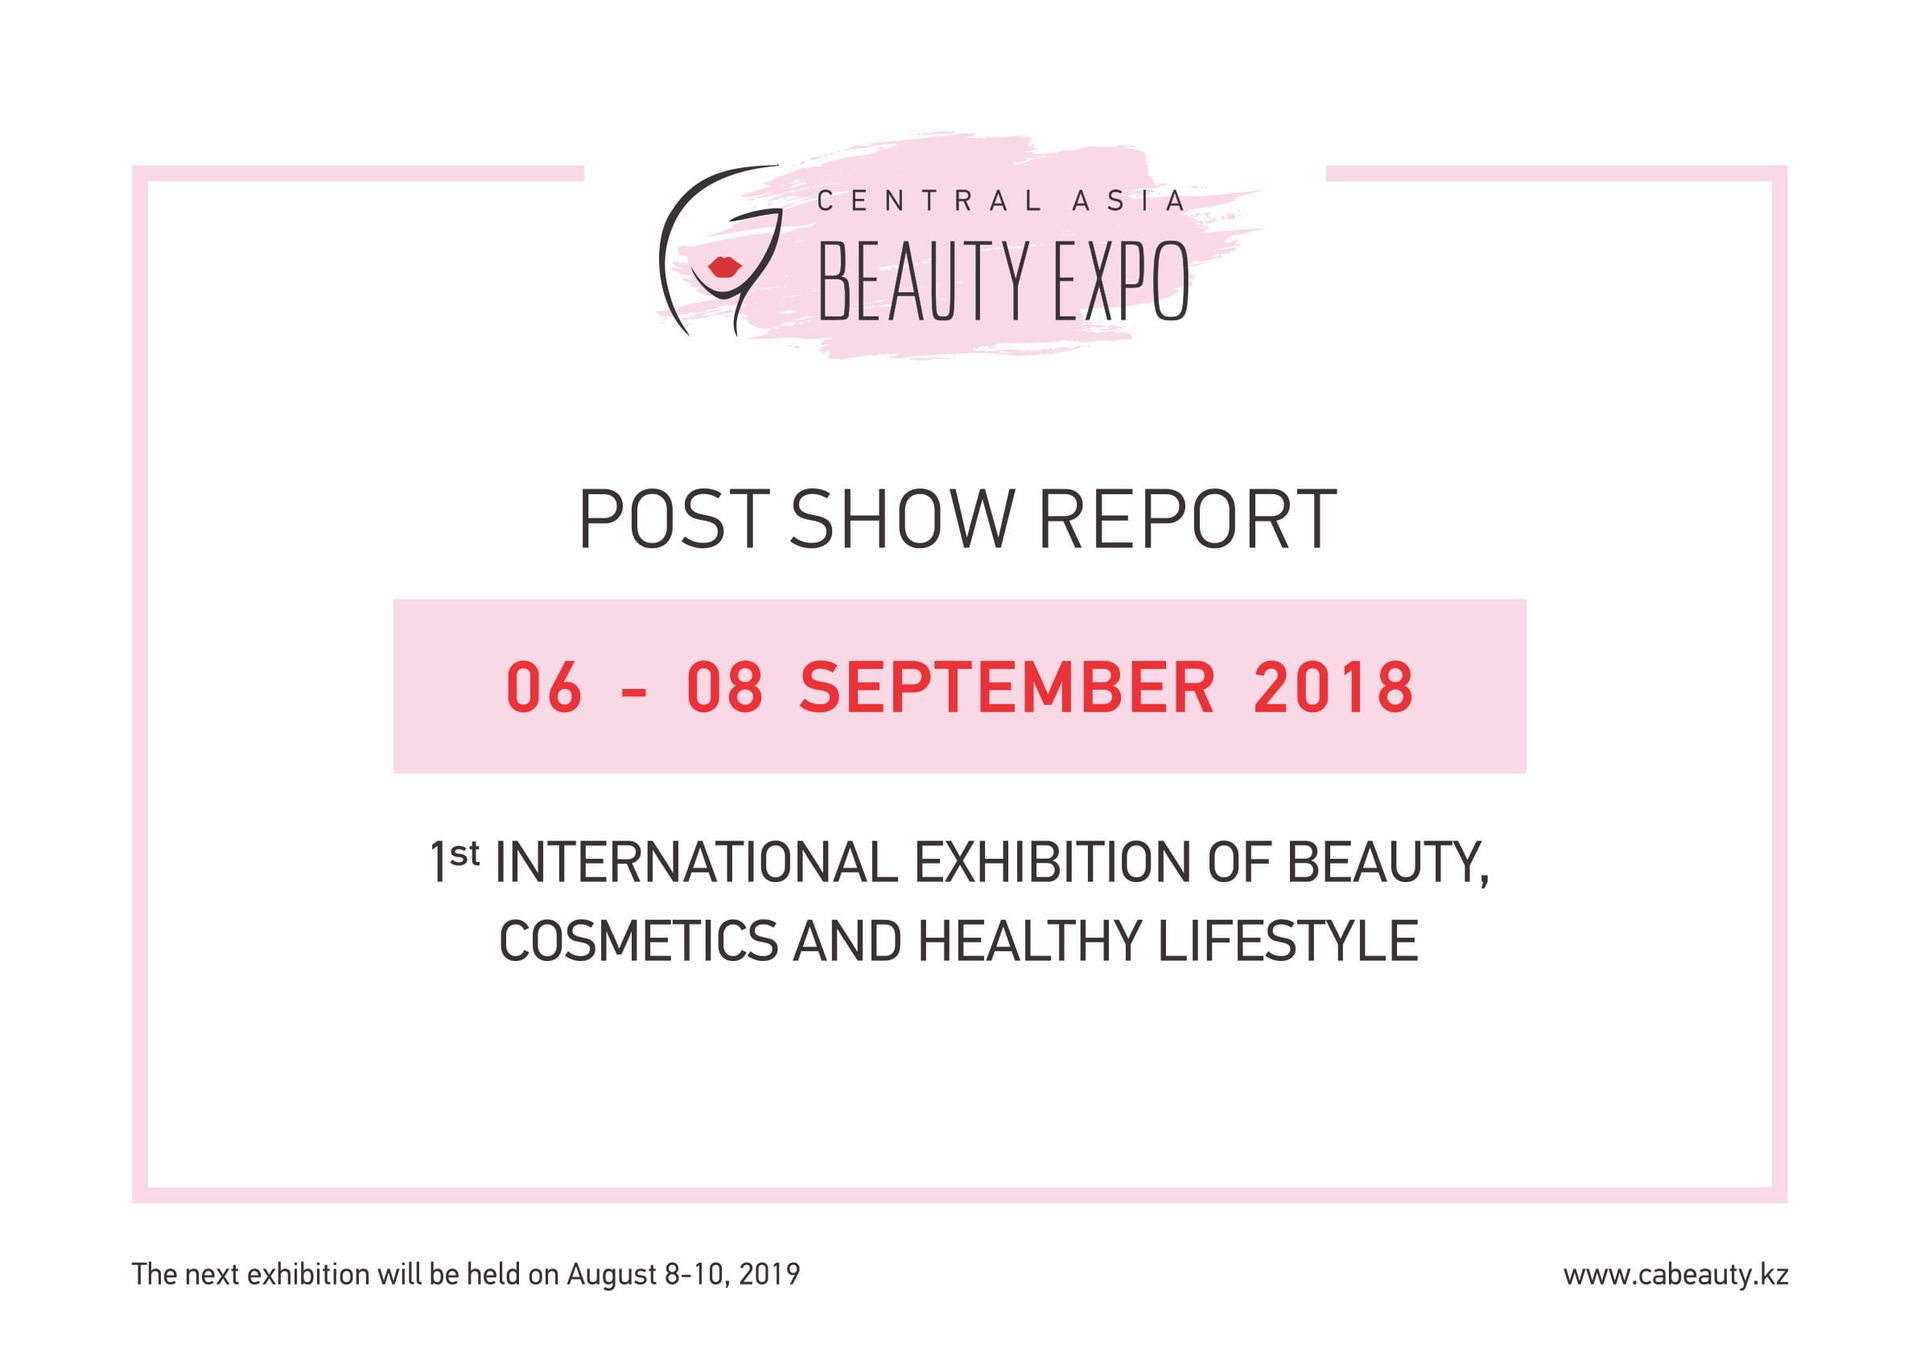 Postshow Report Central Asia Beauty Expo  (1)